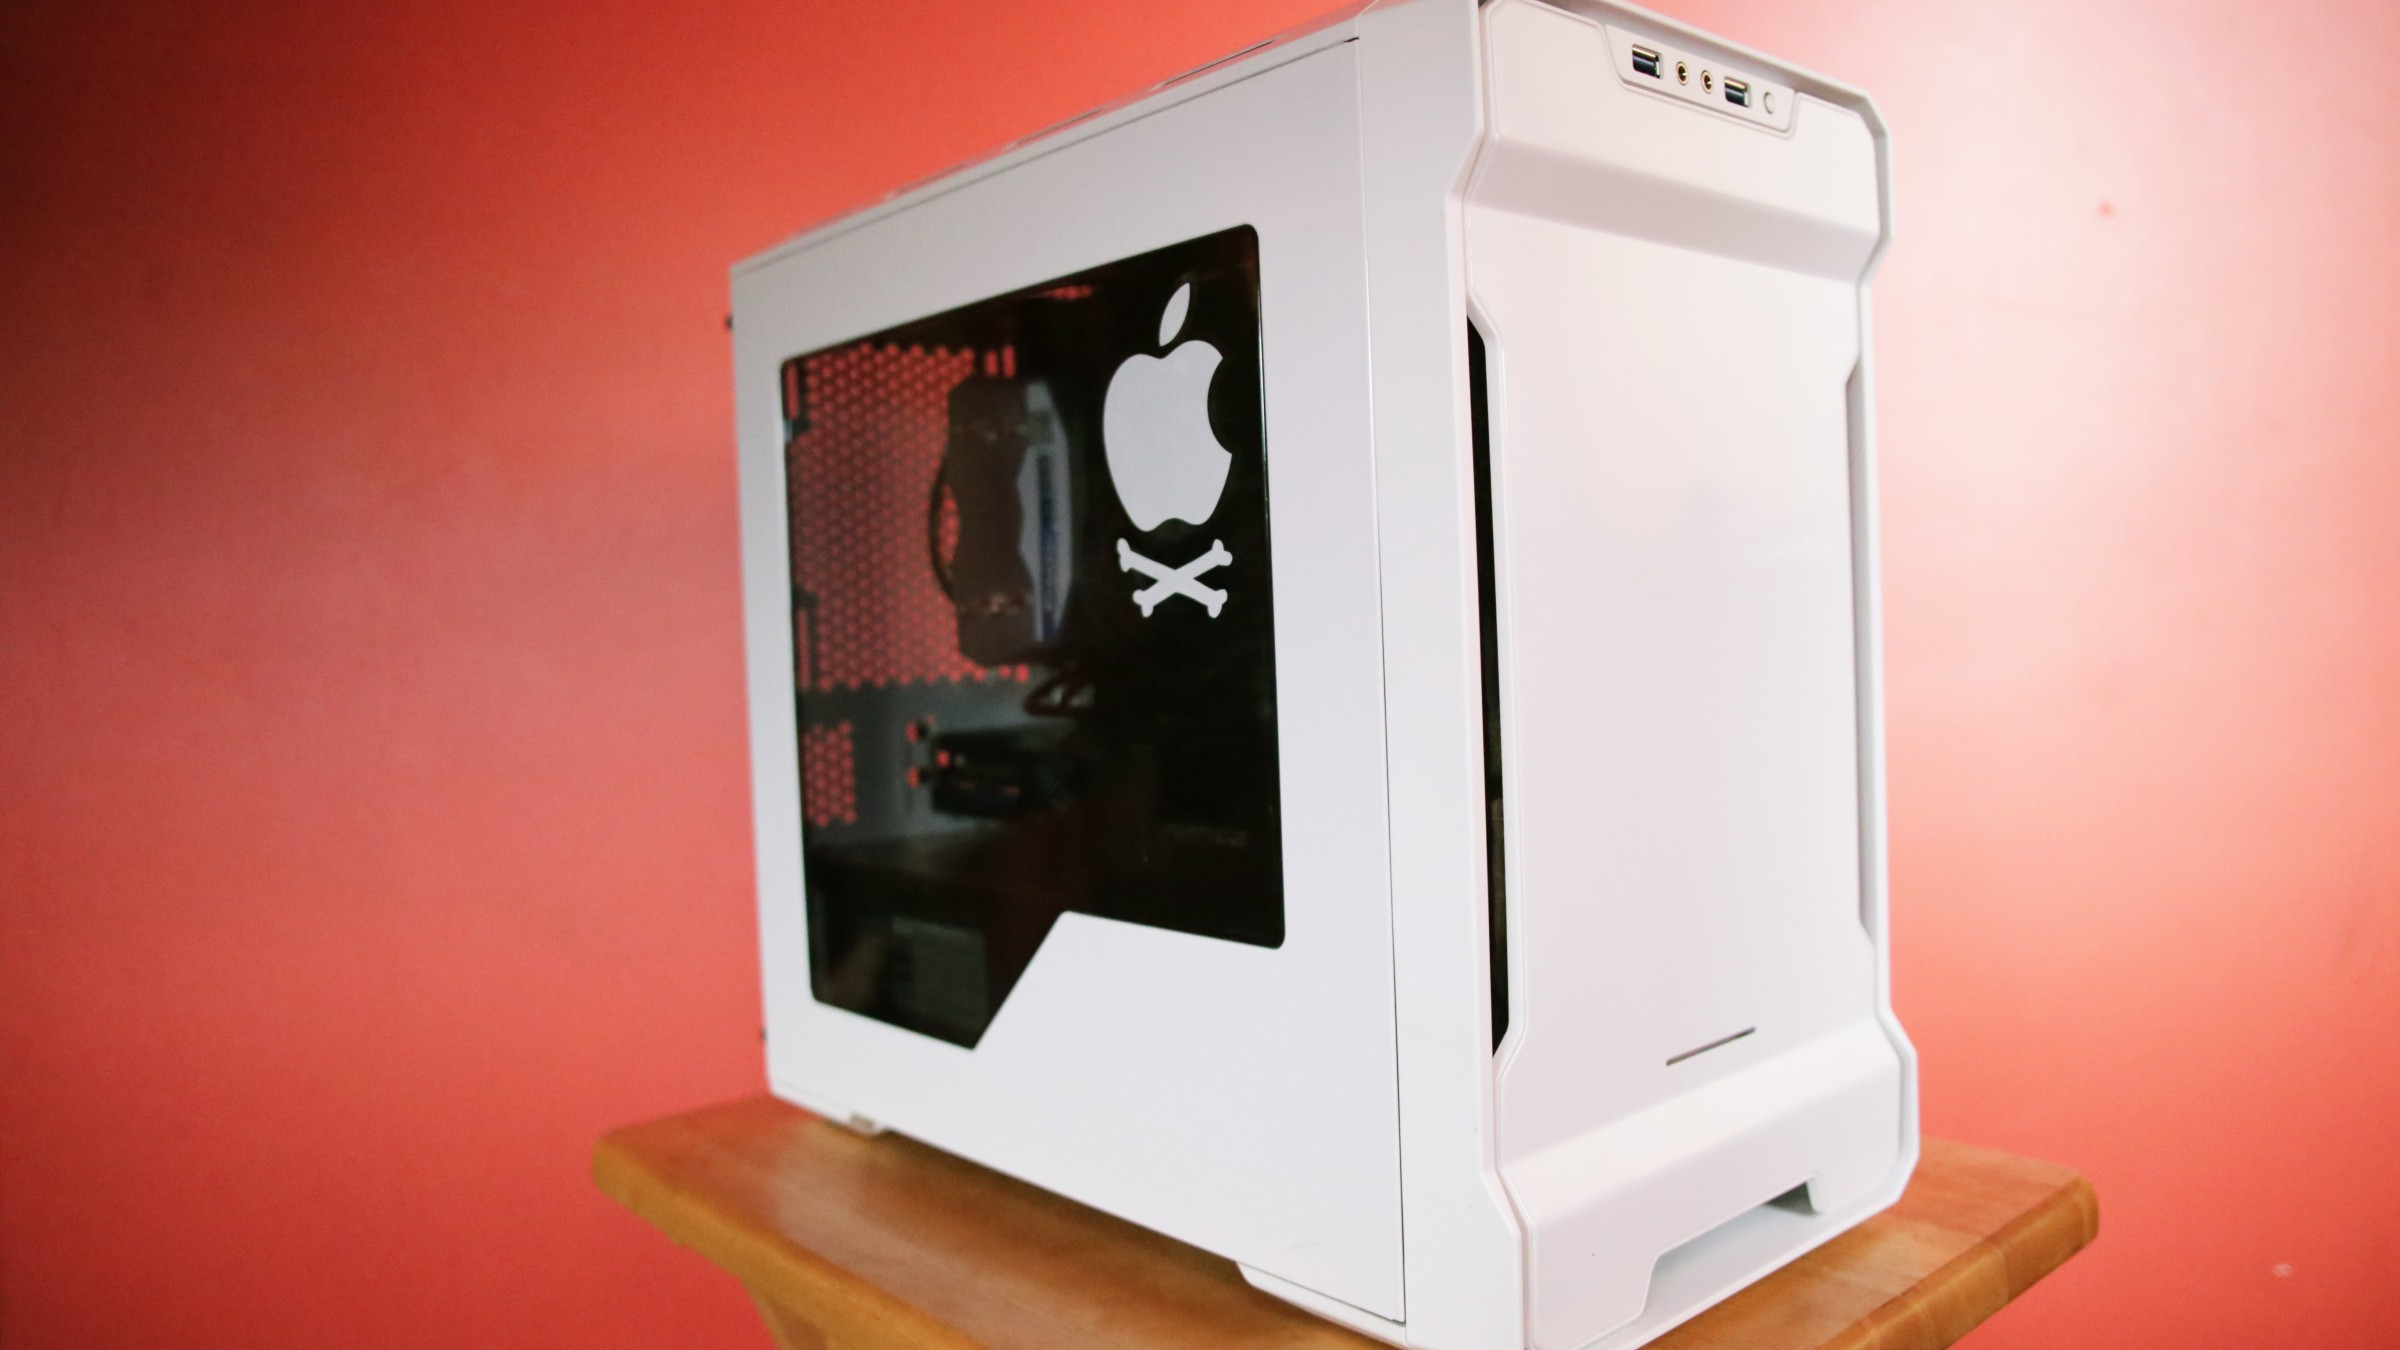 Hackintosh 101 How To Build A 4k Editing Machine For Half The Vintage Apple Computer Circuit Board Clocks Craziest Gadgets Purchase Price Of Mac